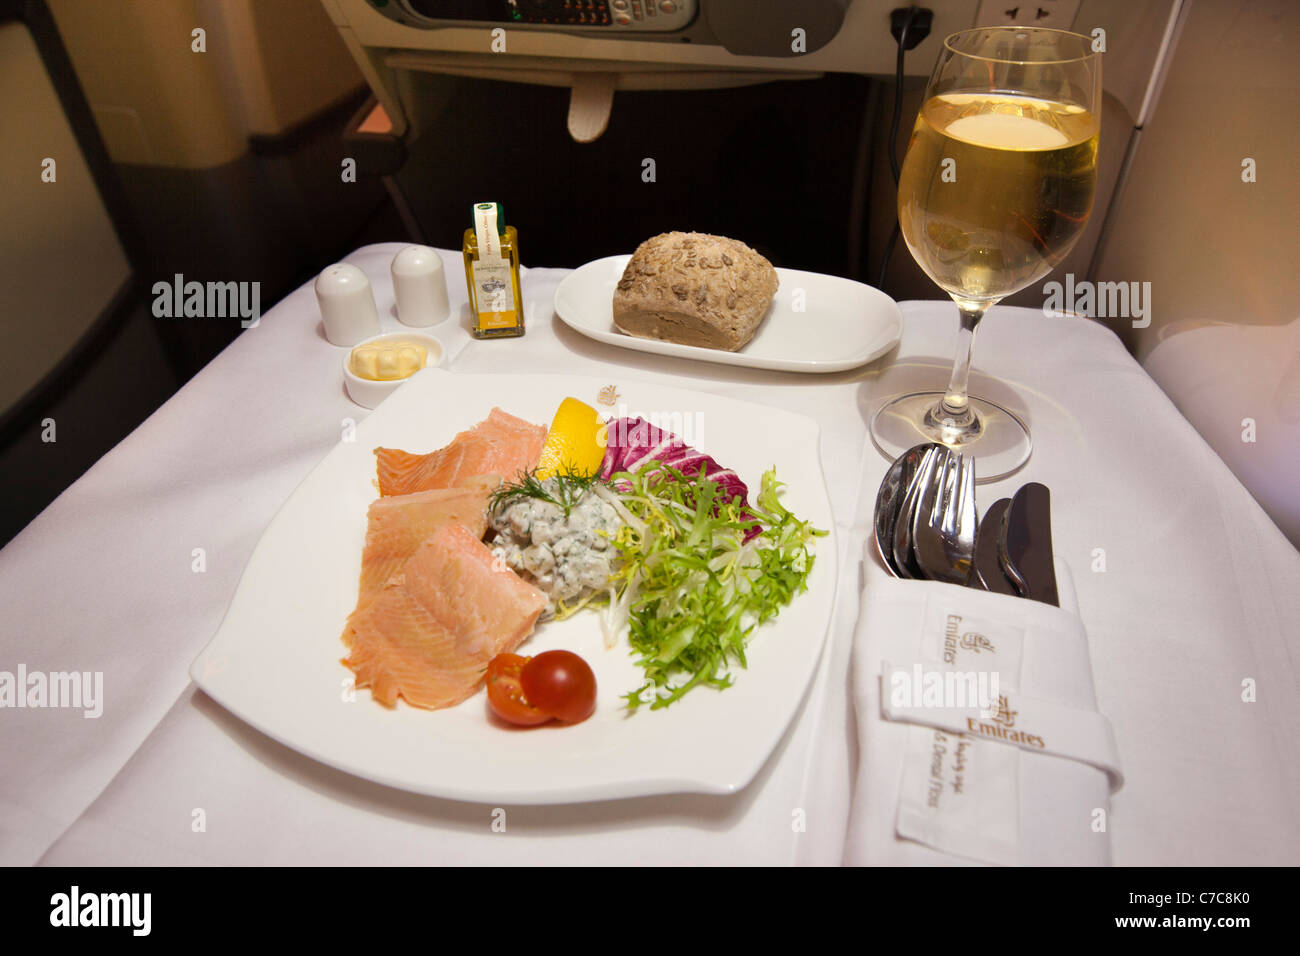 UK, Business Class Air Travel, smoked salmon starter served on Emirates Airlines A380 aircraft - Stock Image